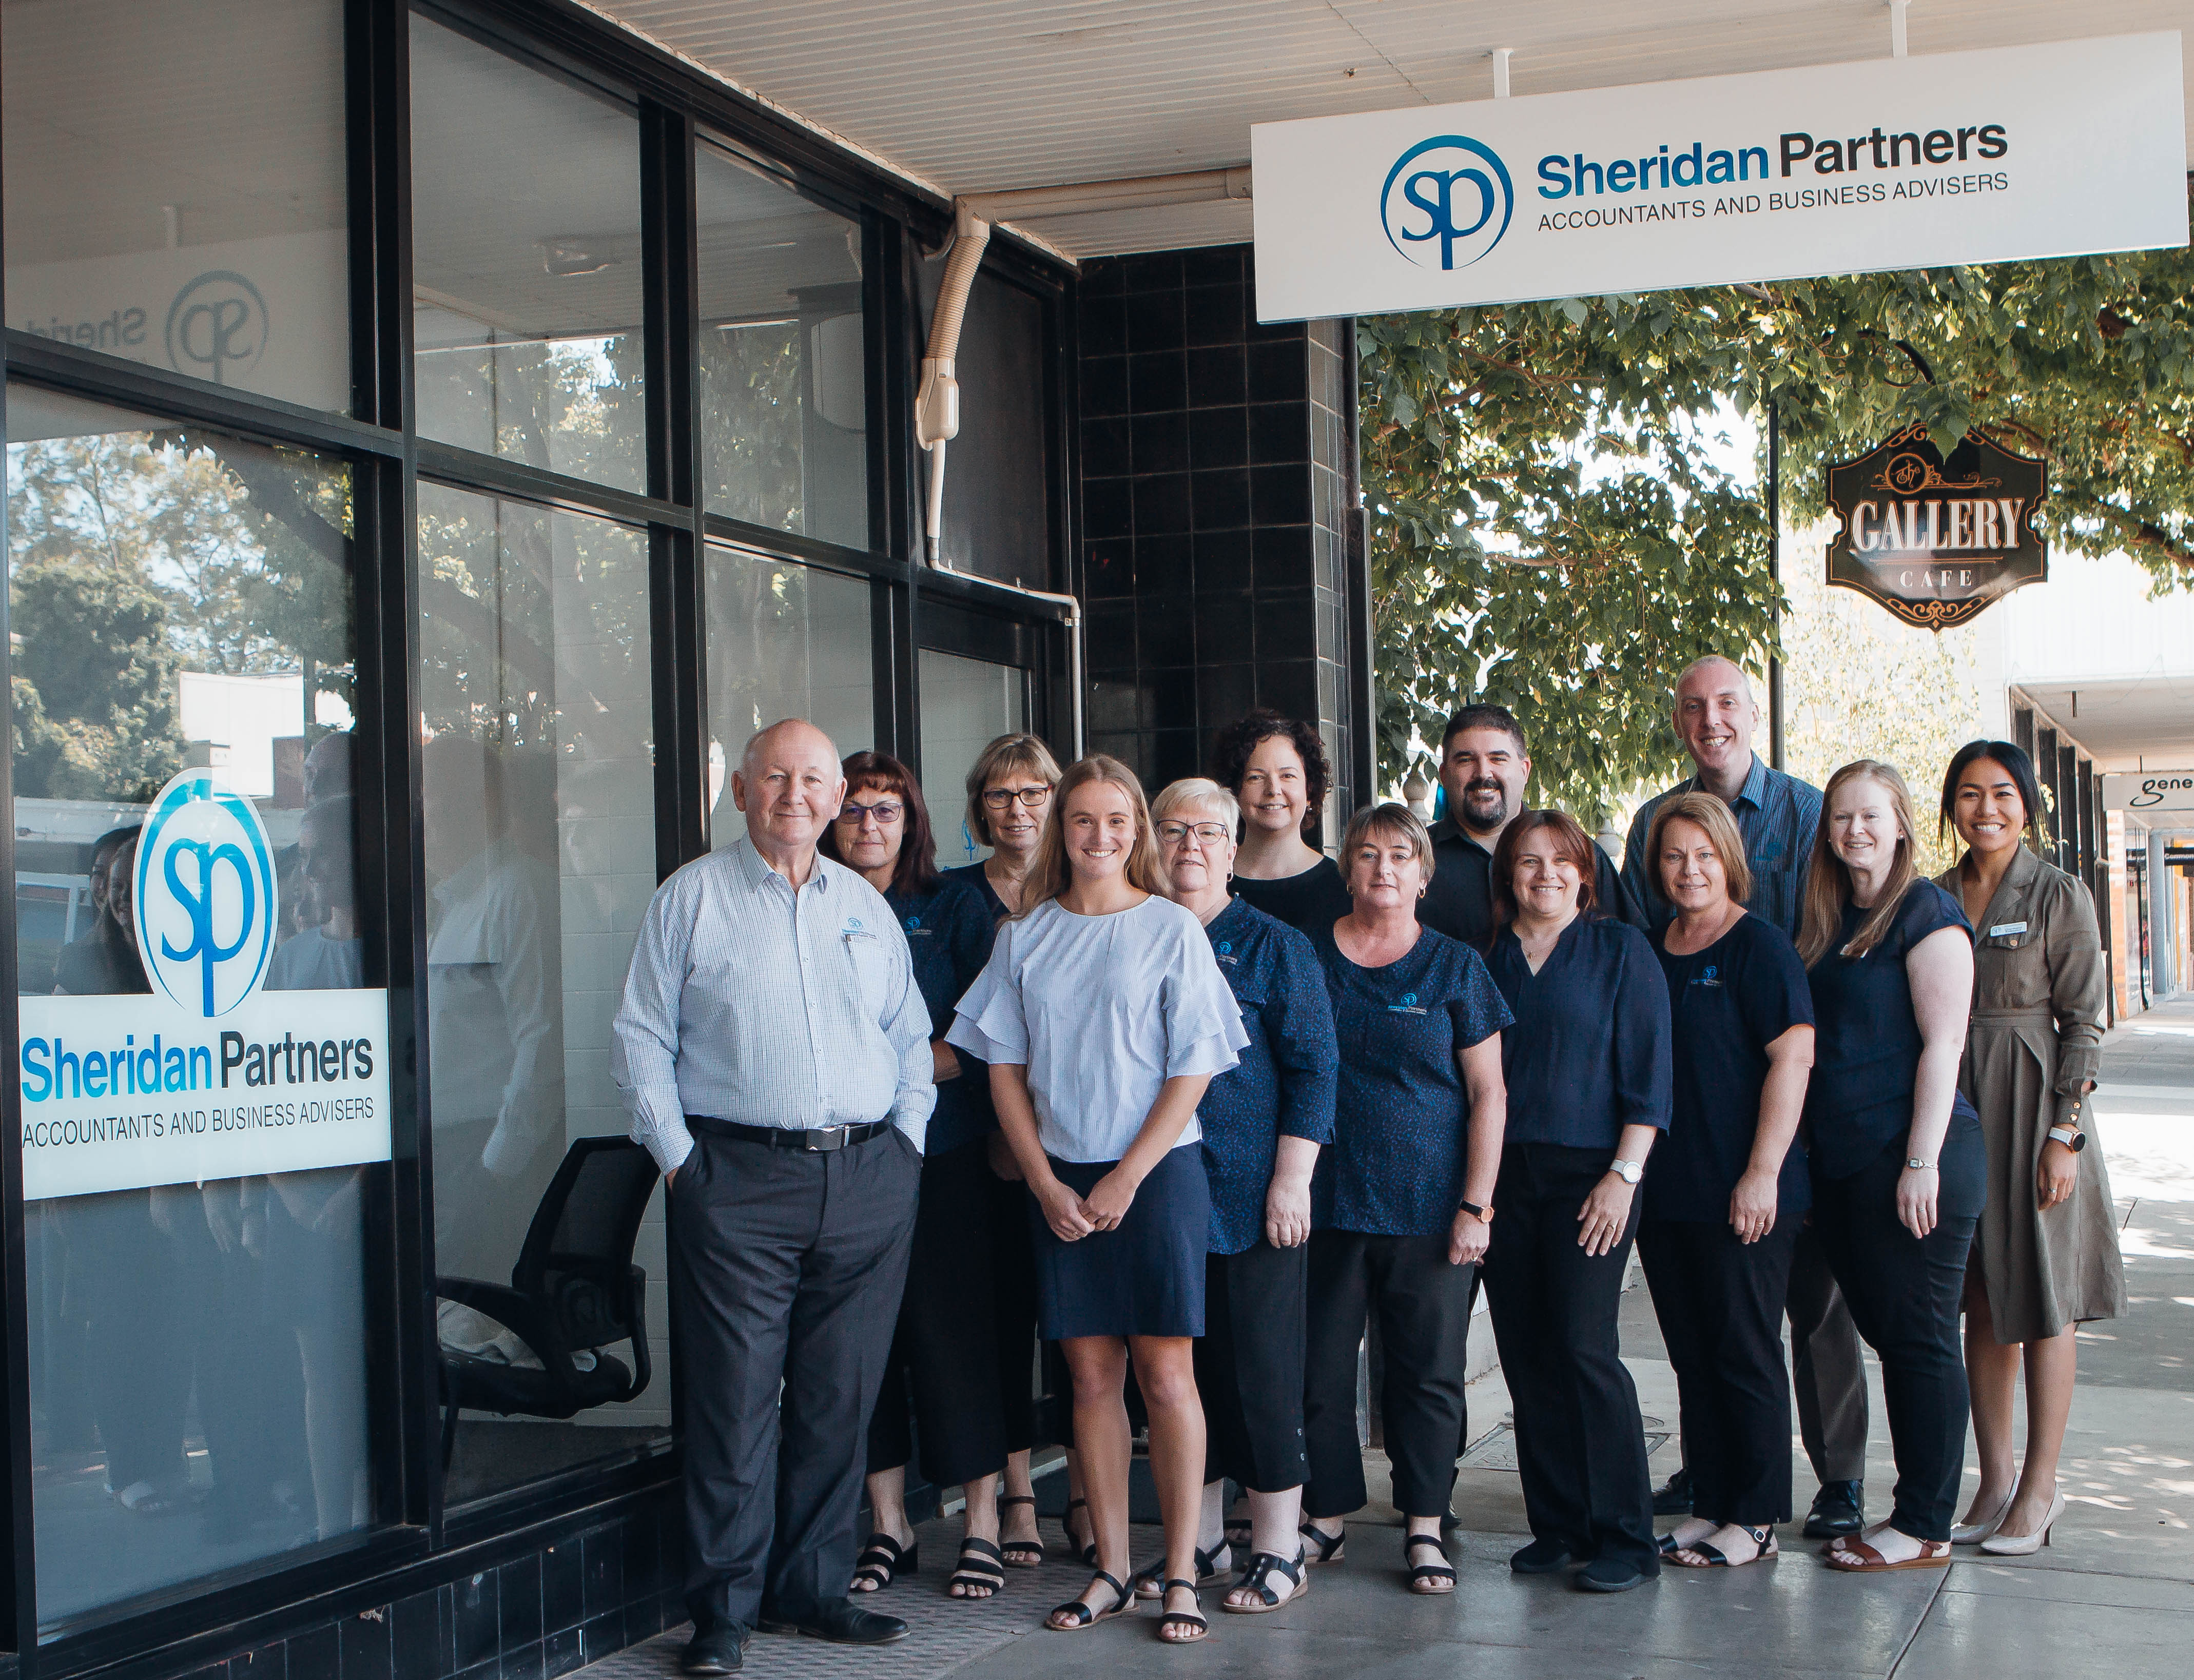 Sheridan Partners Accountants & Business Advisers - Team